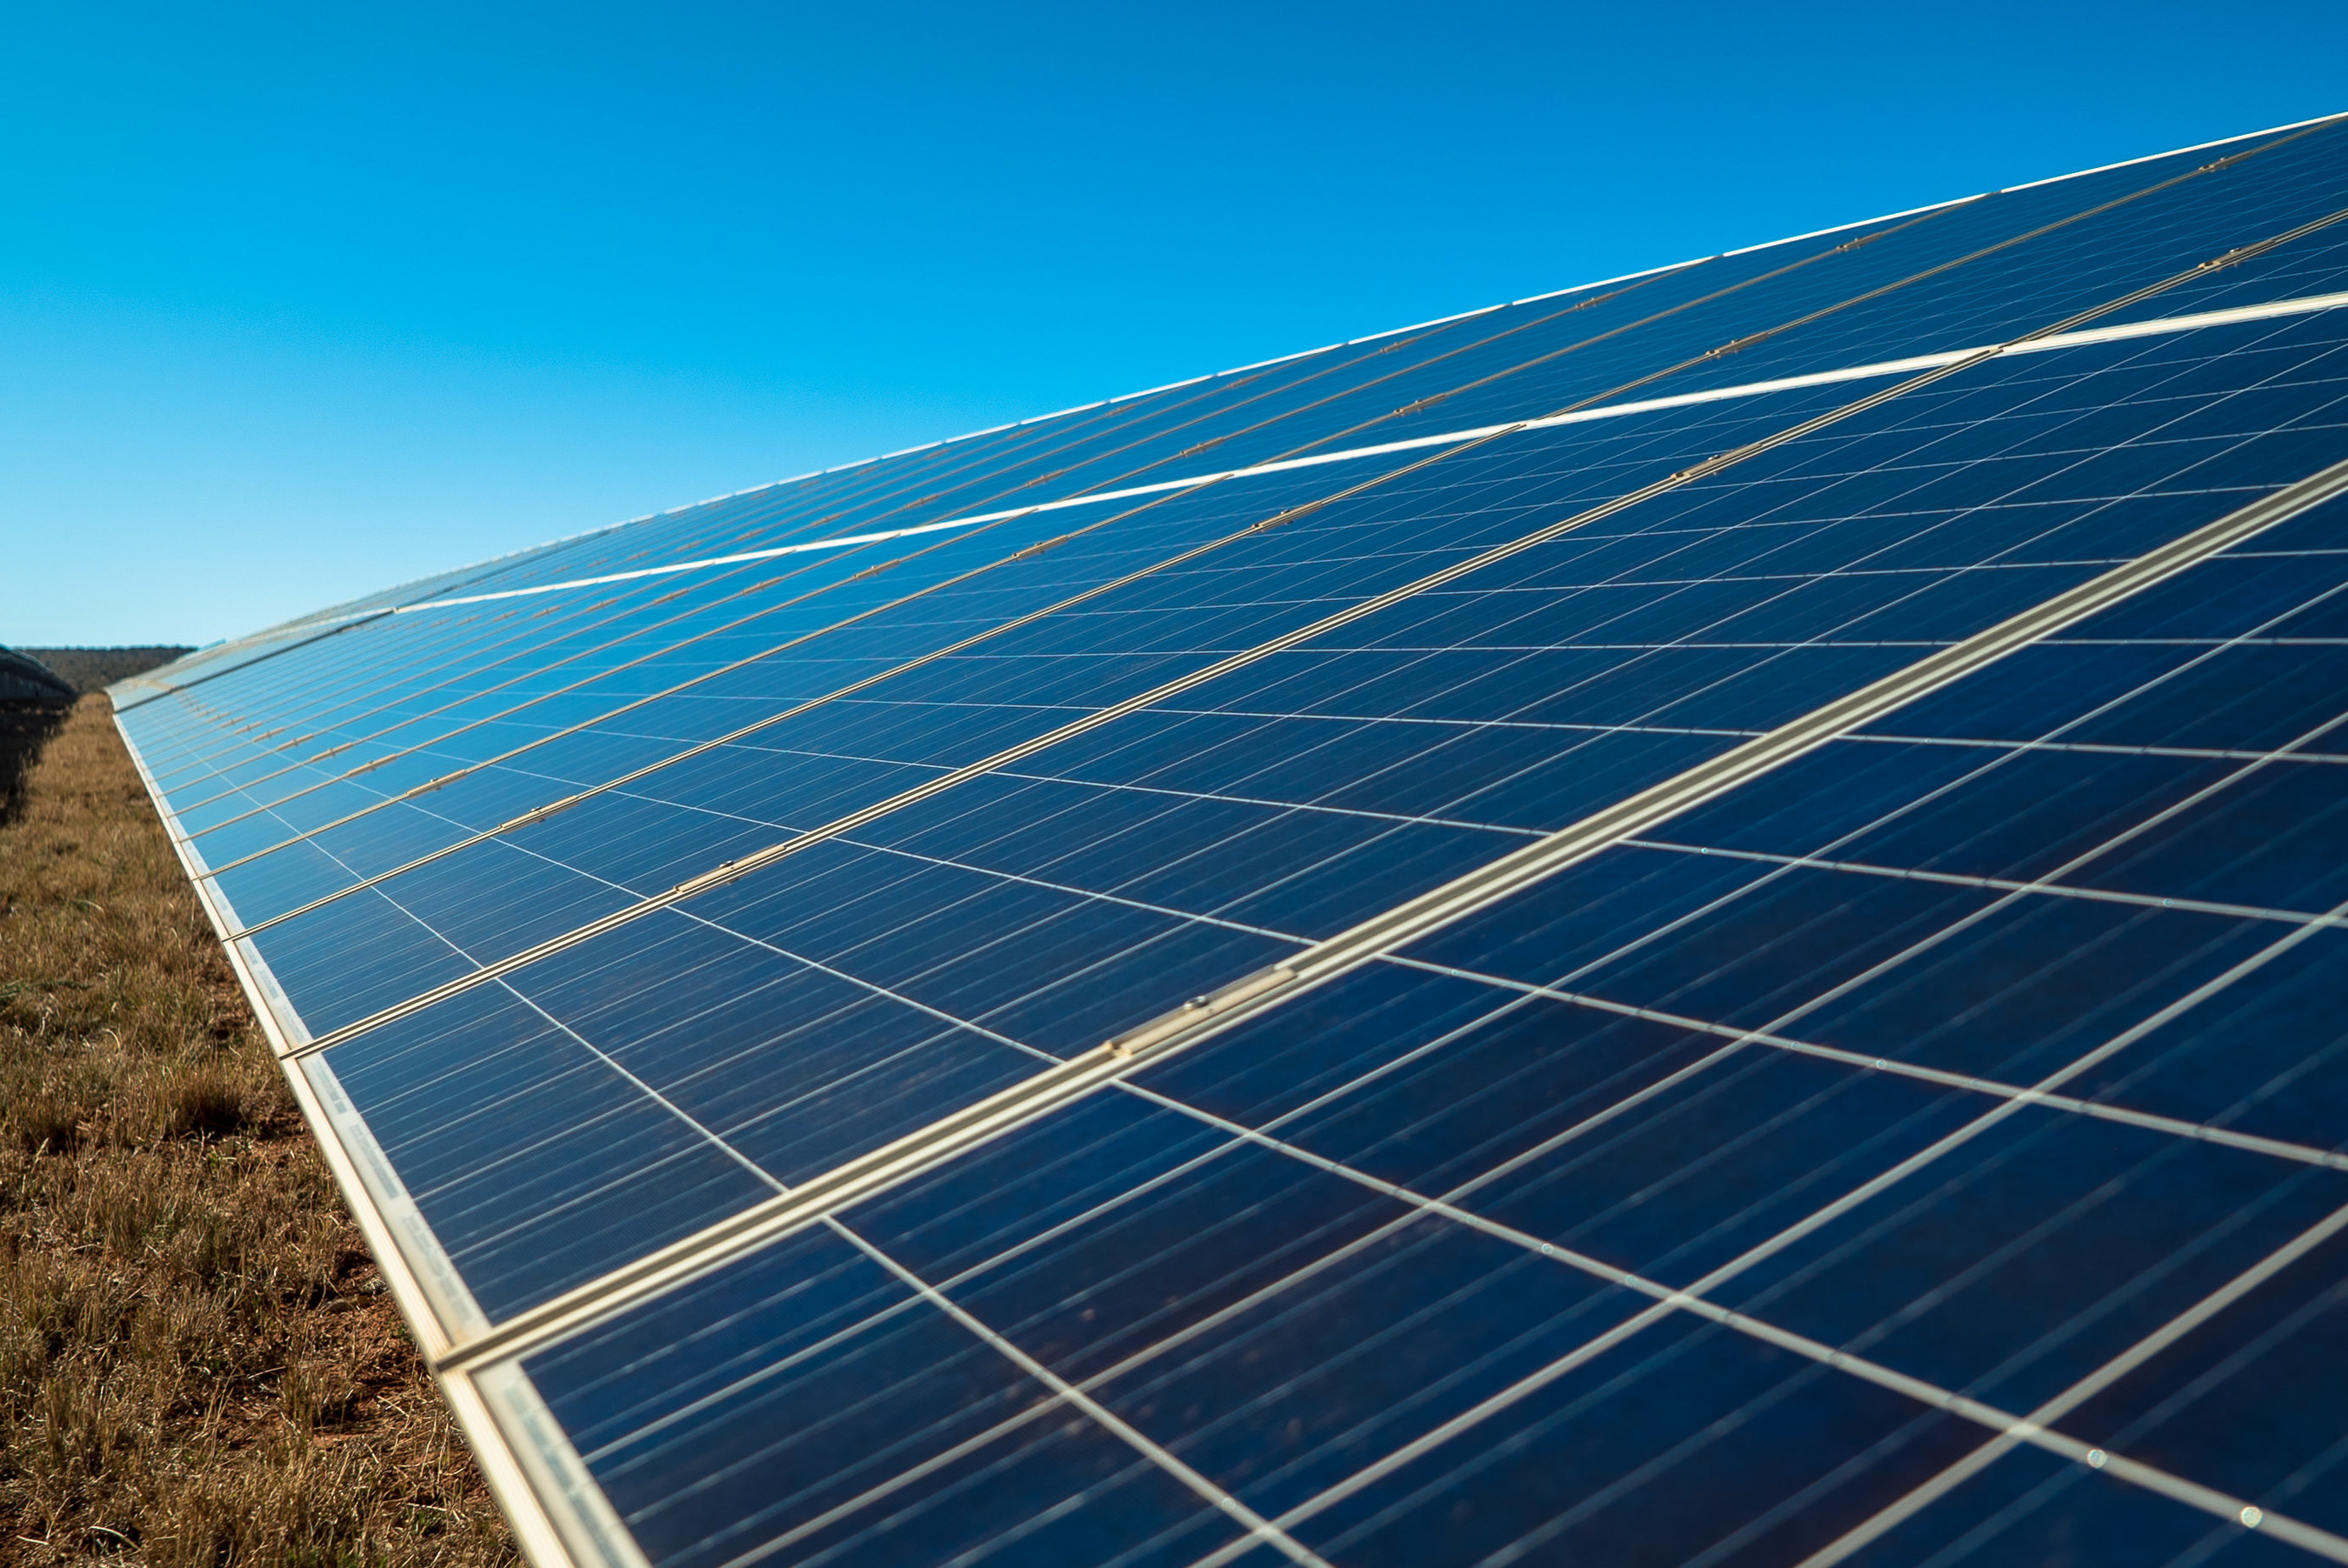 Urban Solar Farms will provide a framework to cost-effectively deploy renewable energy in urban areas